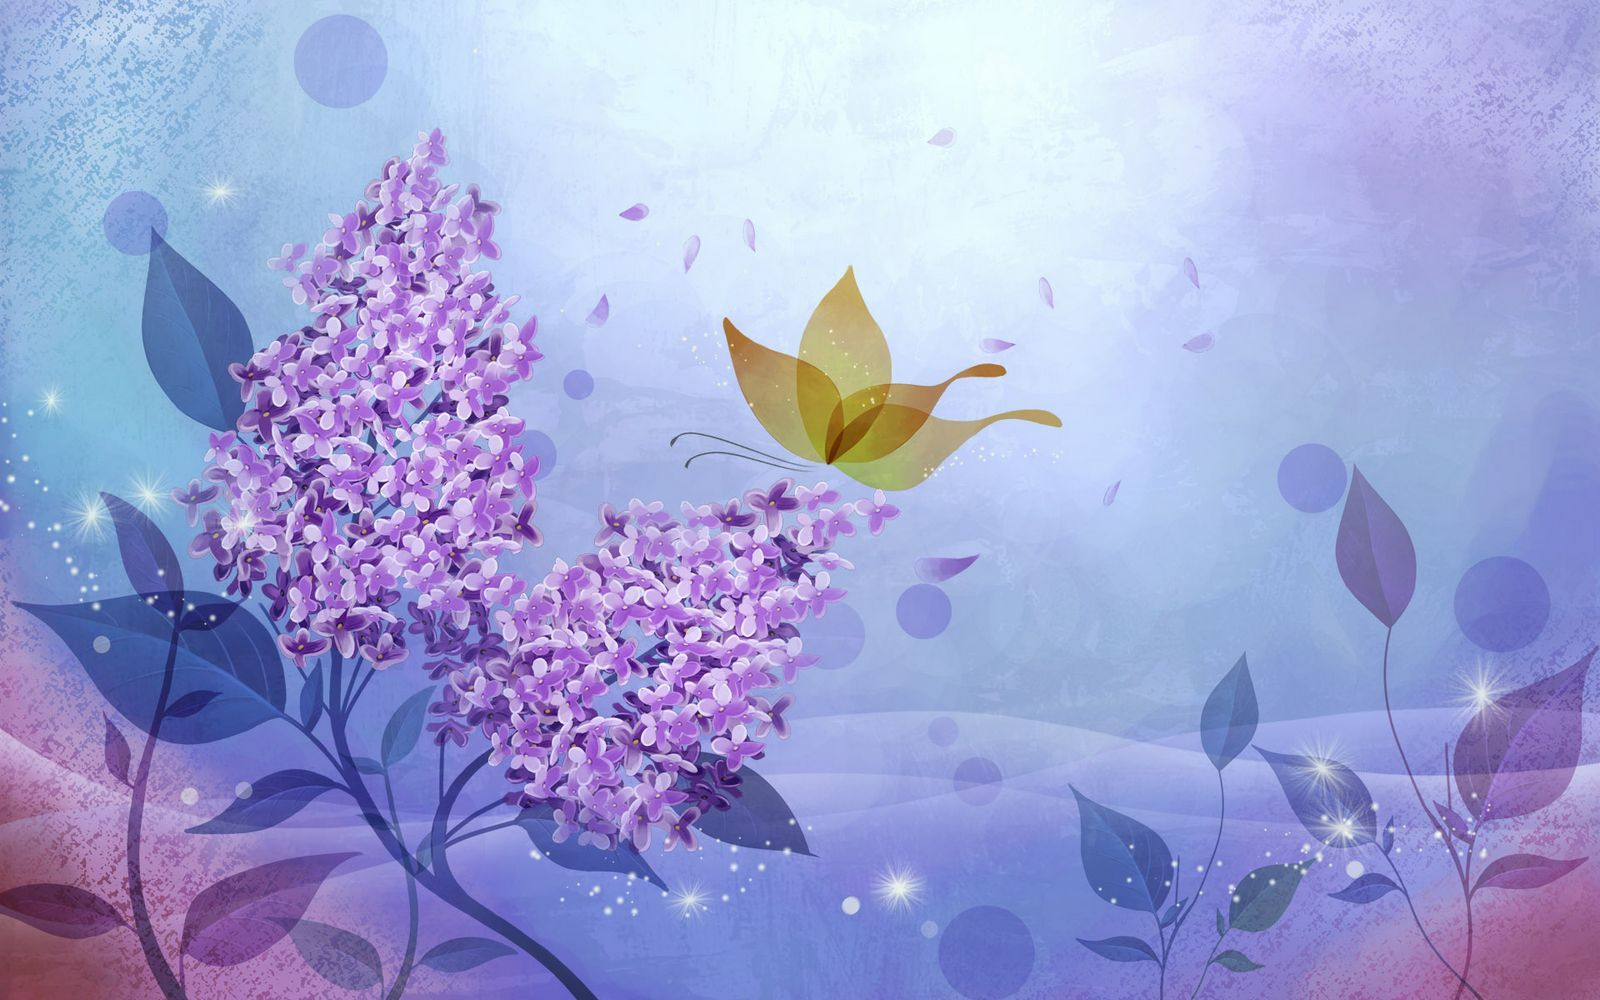 art flowers background wallpaper - photo #6